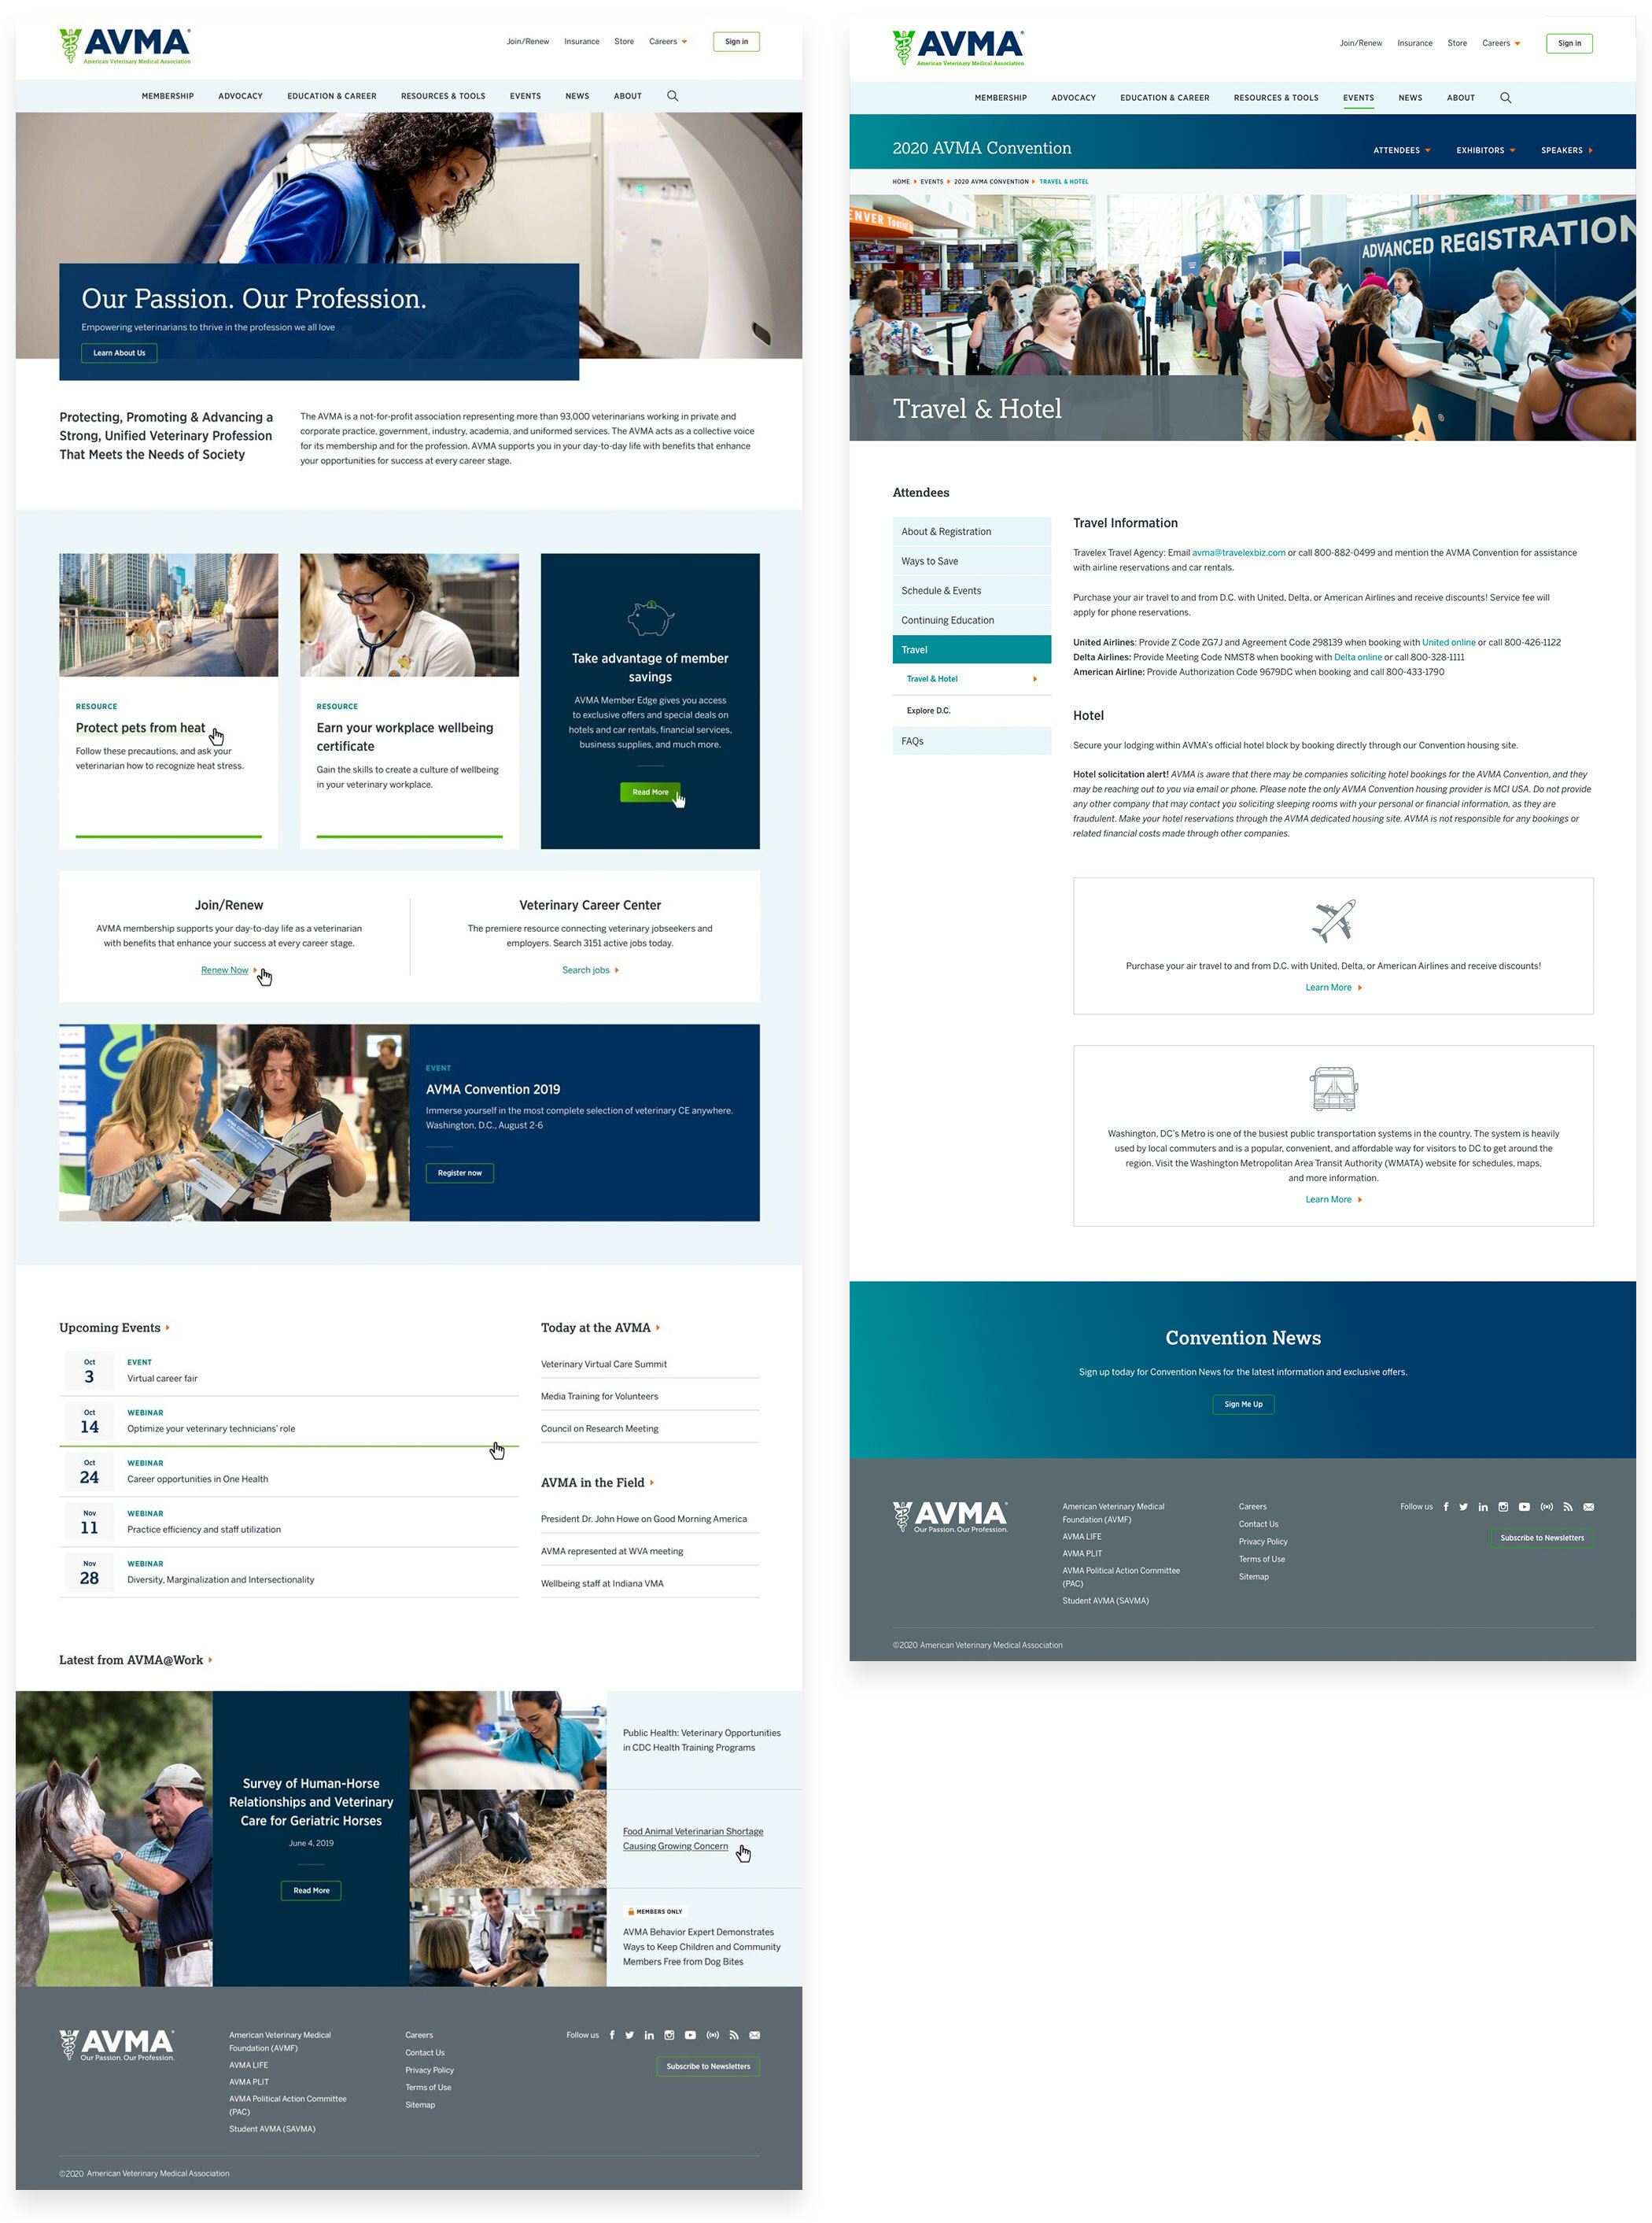 Two screen designs from the AVMA website project